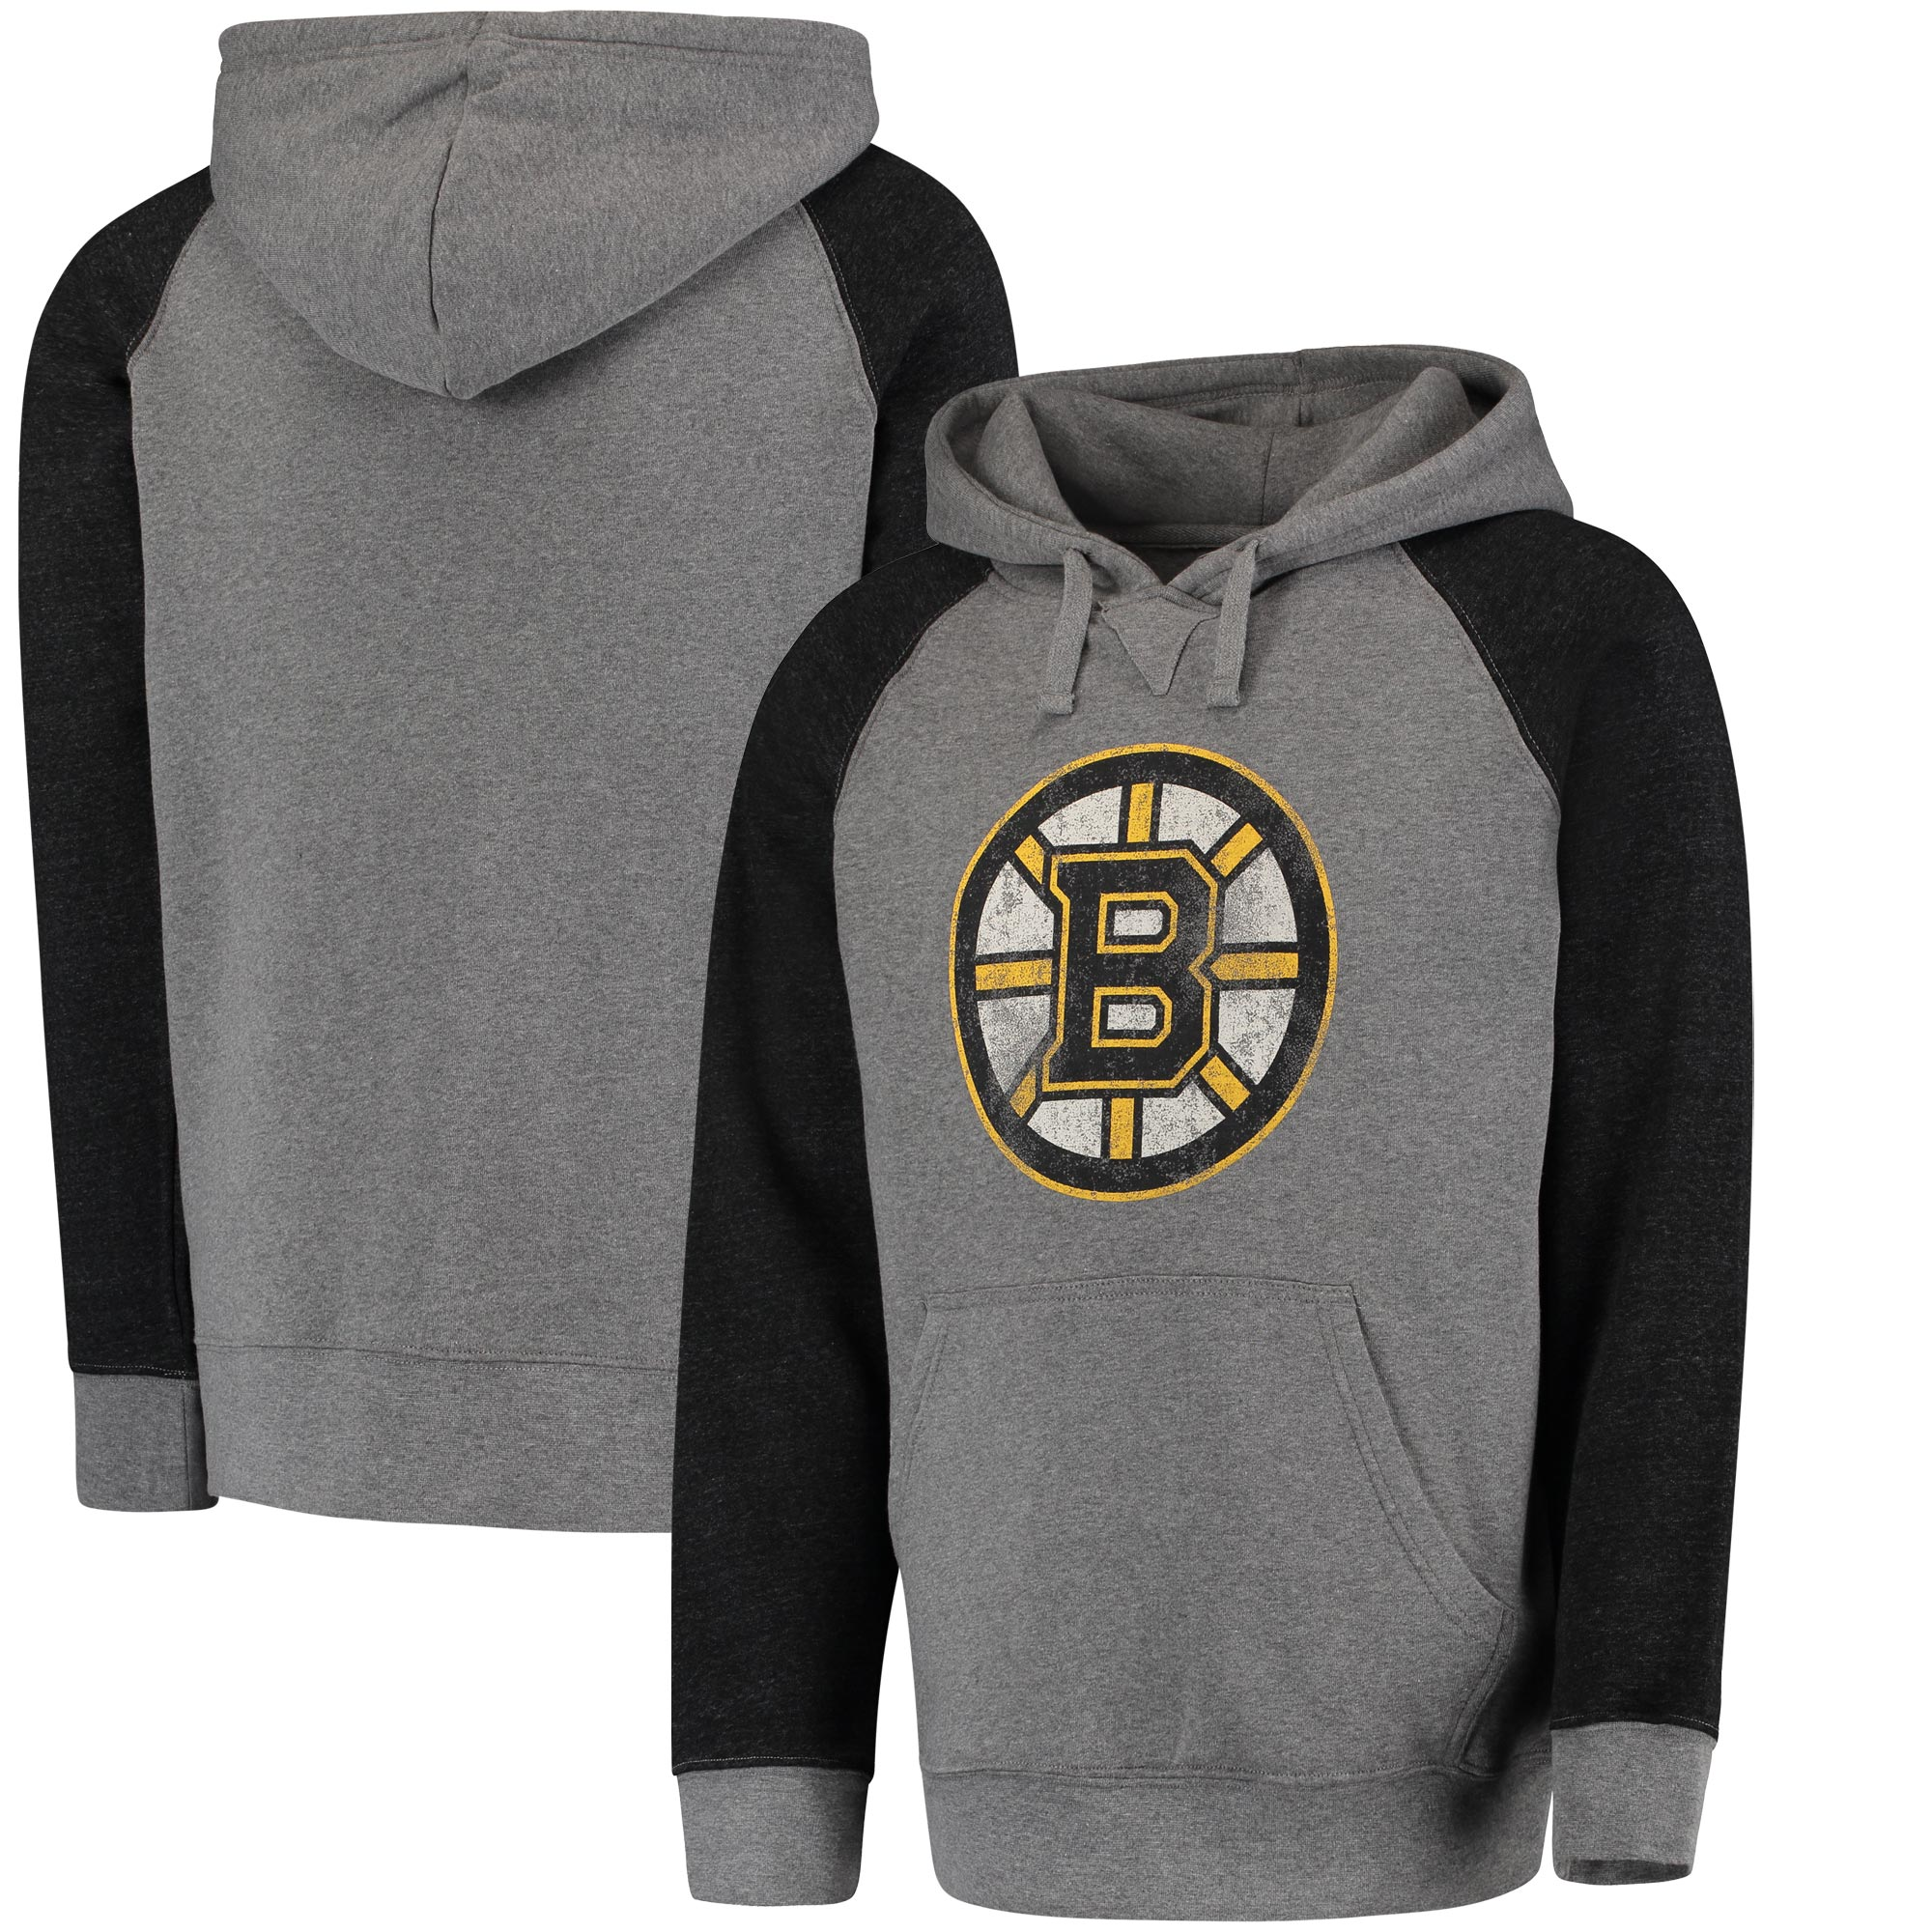 Boston Bruins Distressed Primary Logo Raglan Tri-Blend Pullover Hoodie - Gray/Black